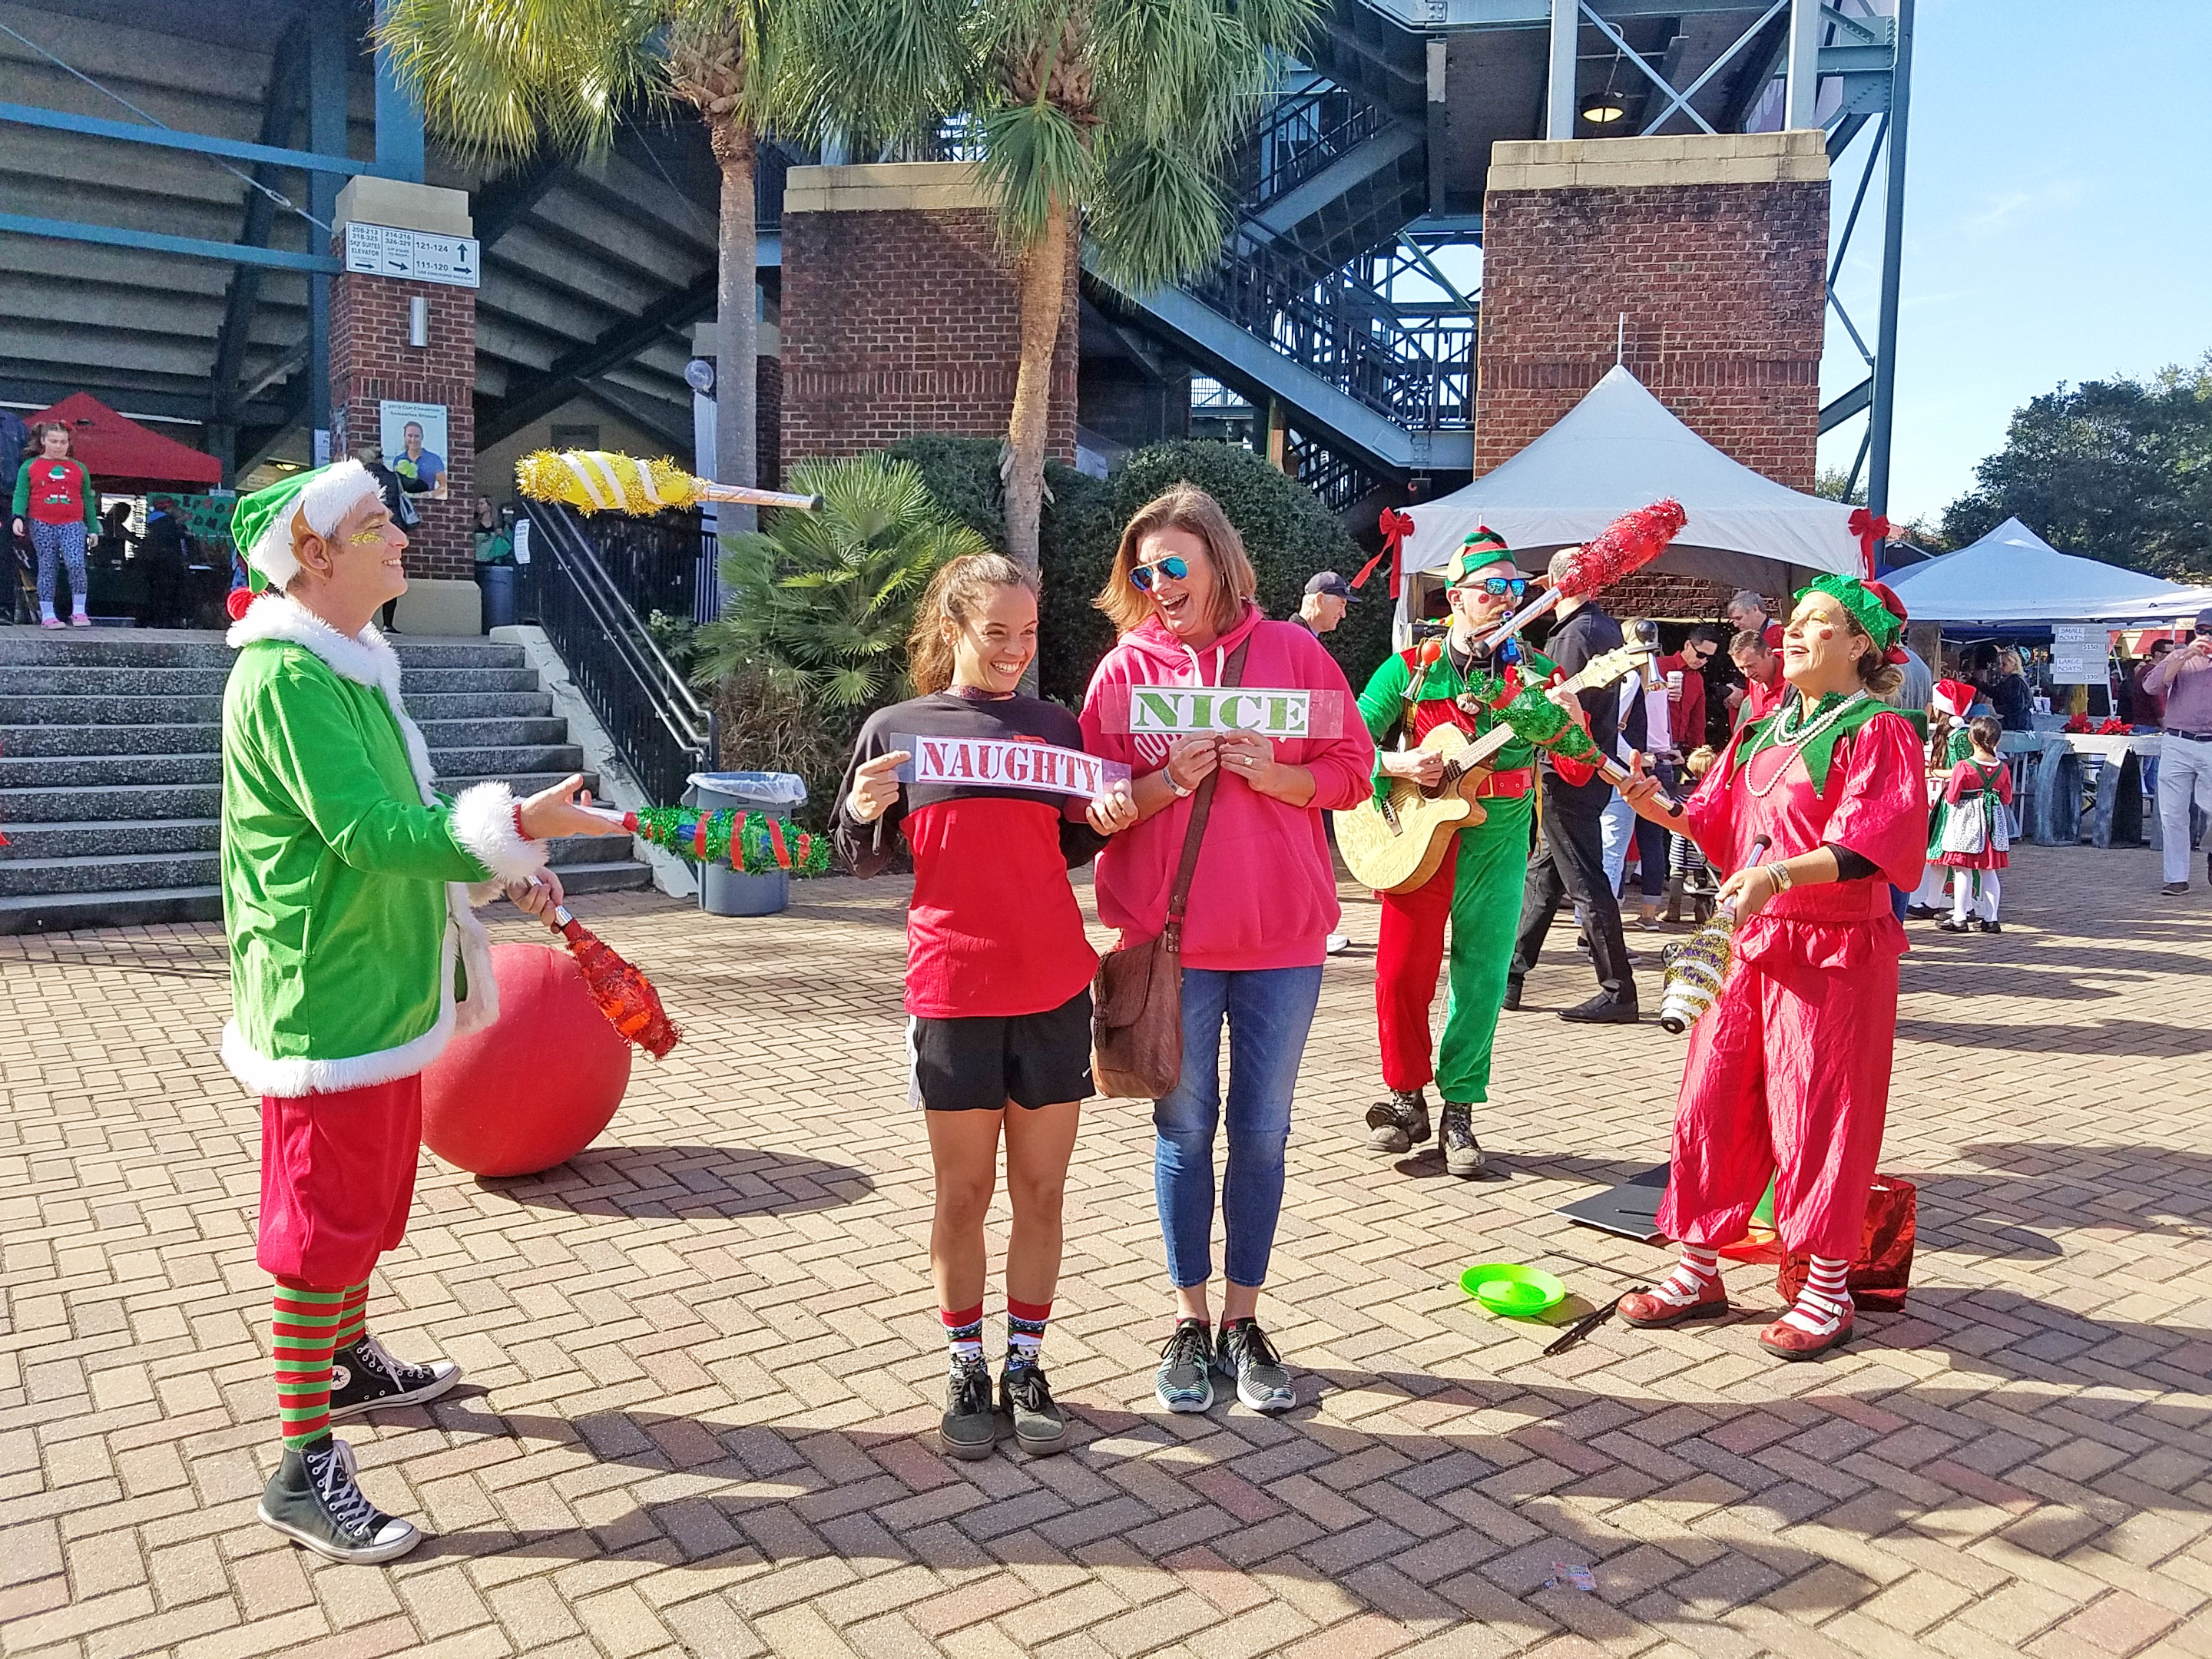 """Rachel Wasilak and Tara Meyer were happy volunteers for Good Clean Fun's juggling act. There was some debate as to whether the """"Naughty"""" and """"Nice"""" signs got mixed up!"""